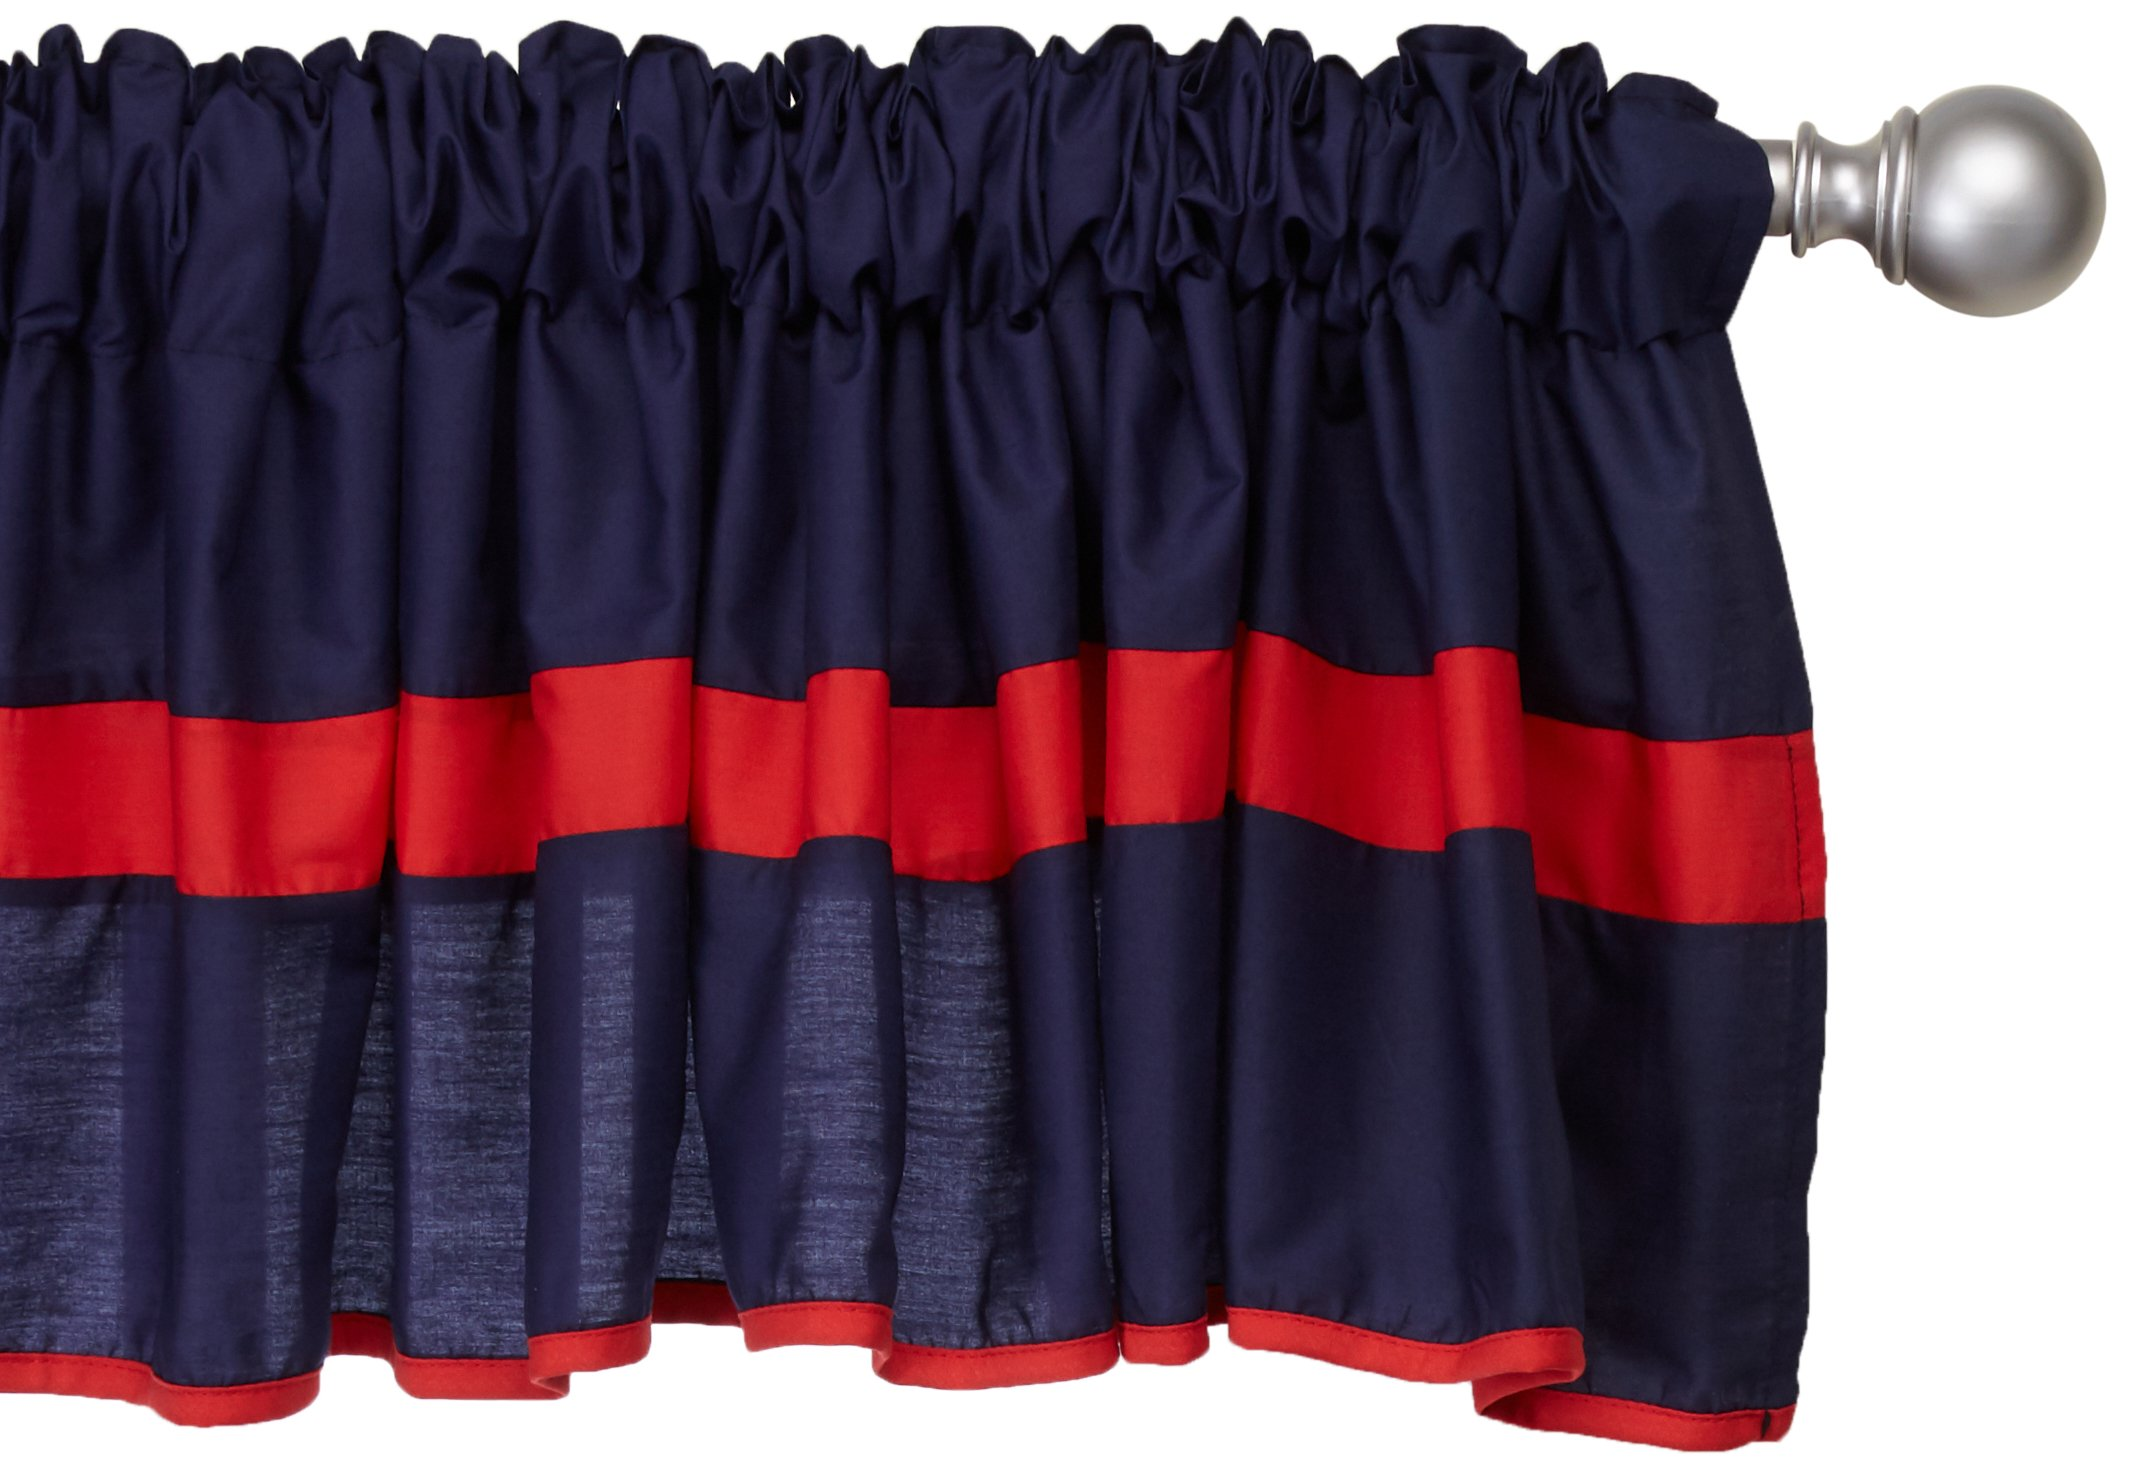 Baby Doll Bedding Solid Stripe Window Valance, Navy/Red by BabyDoll Bedding